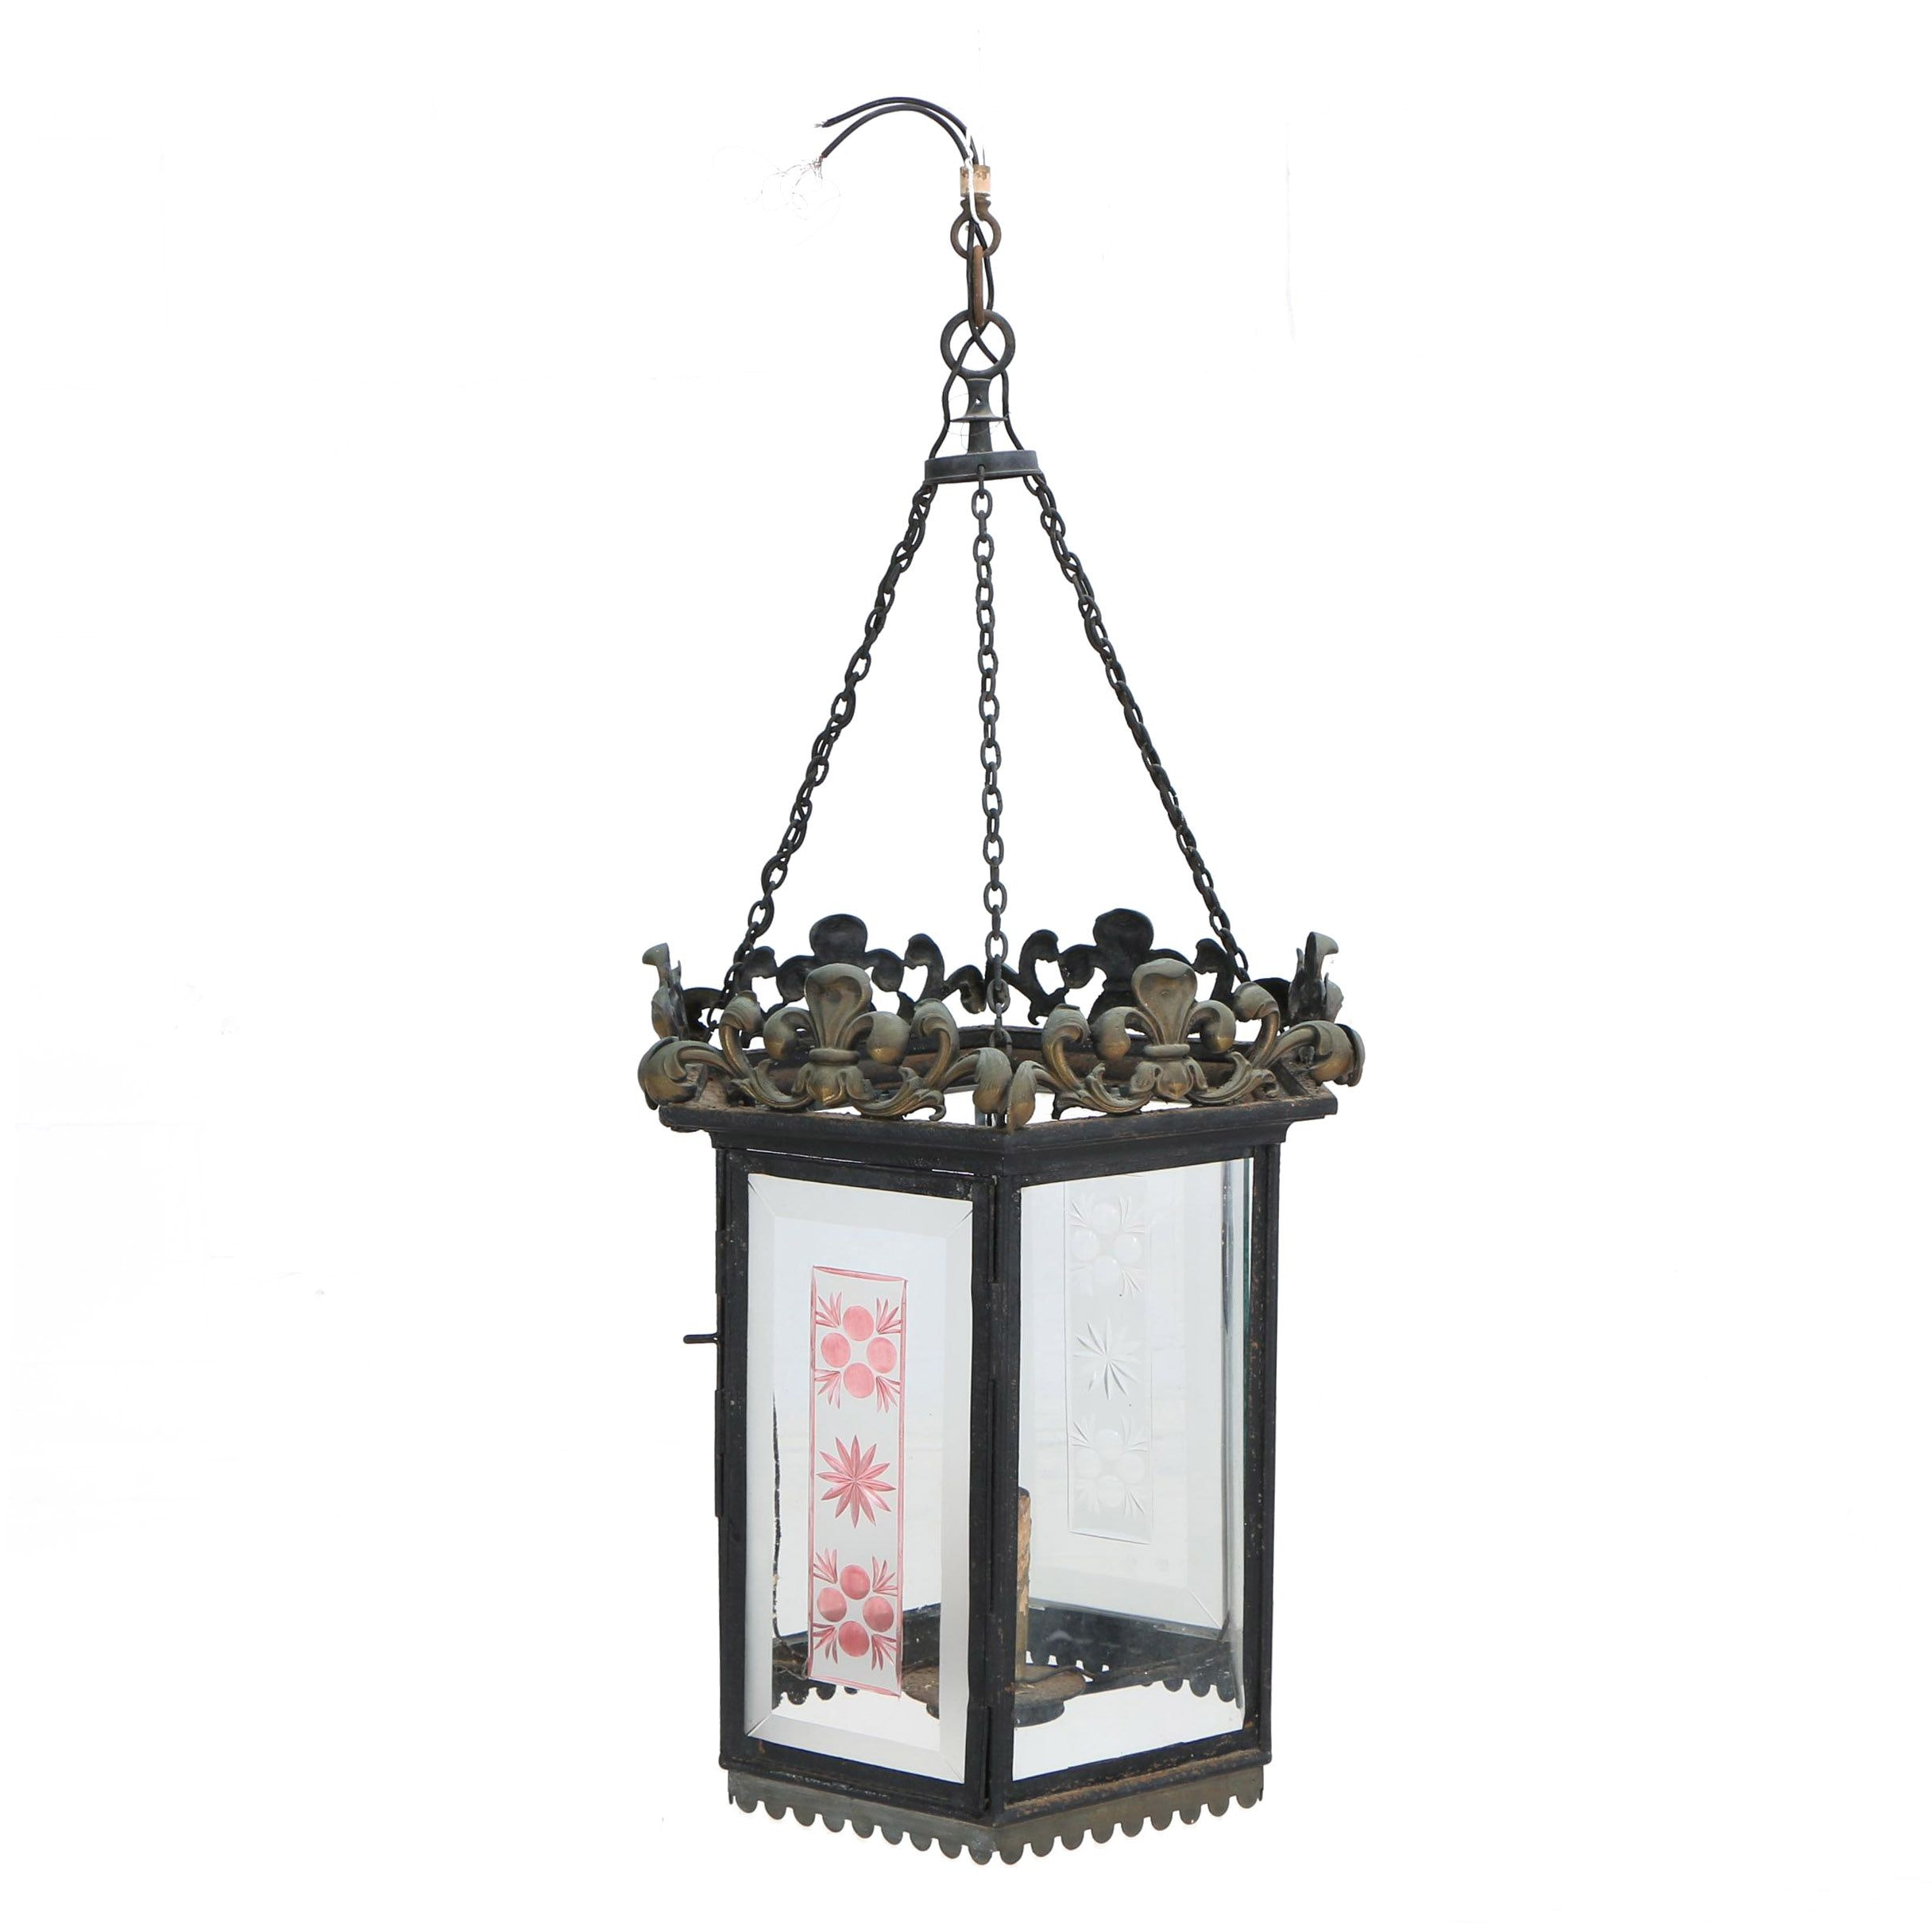 Hexagonal Metal and Glass Lantern with Etched Glass Panels